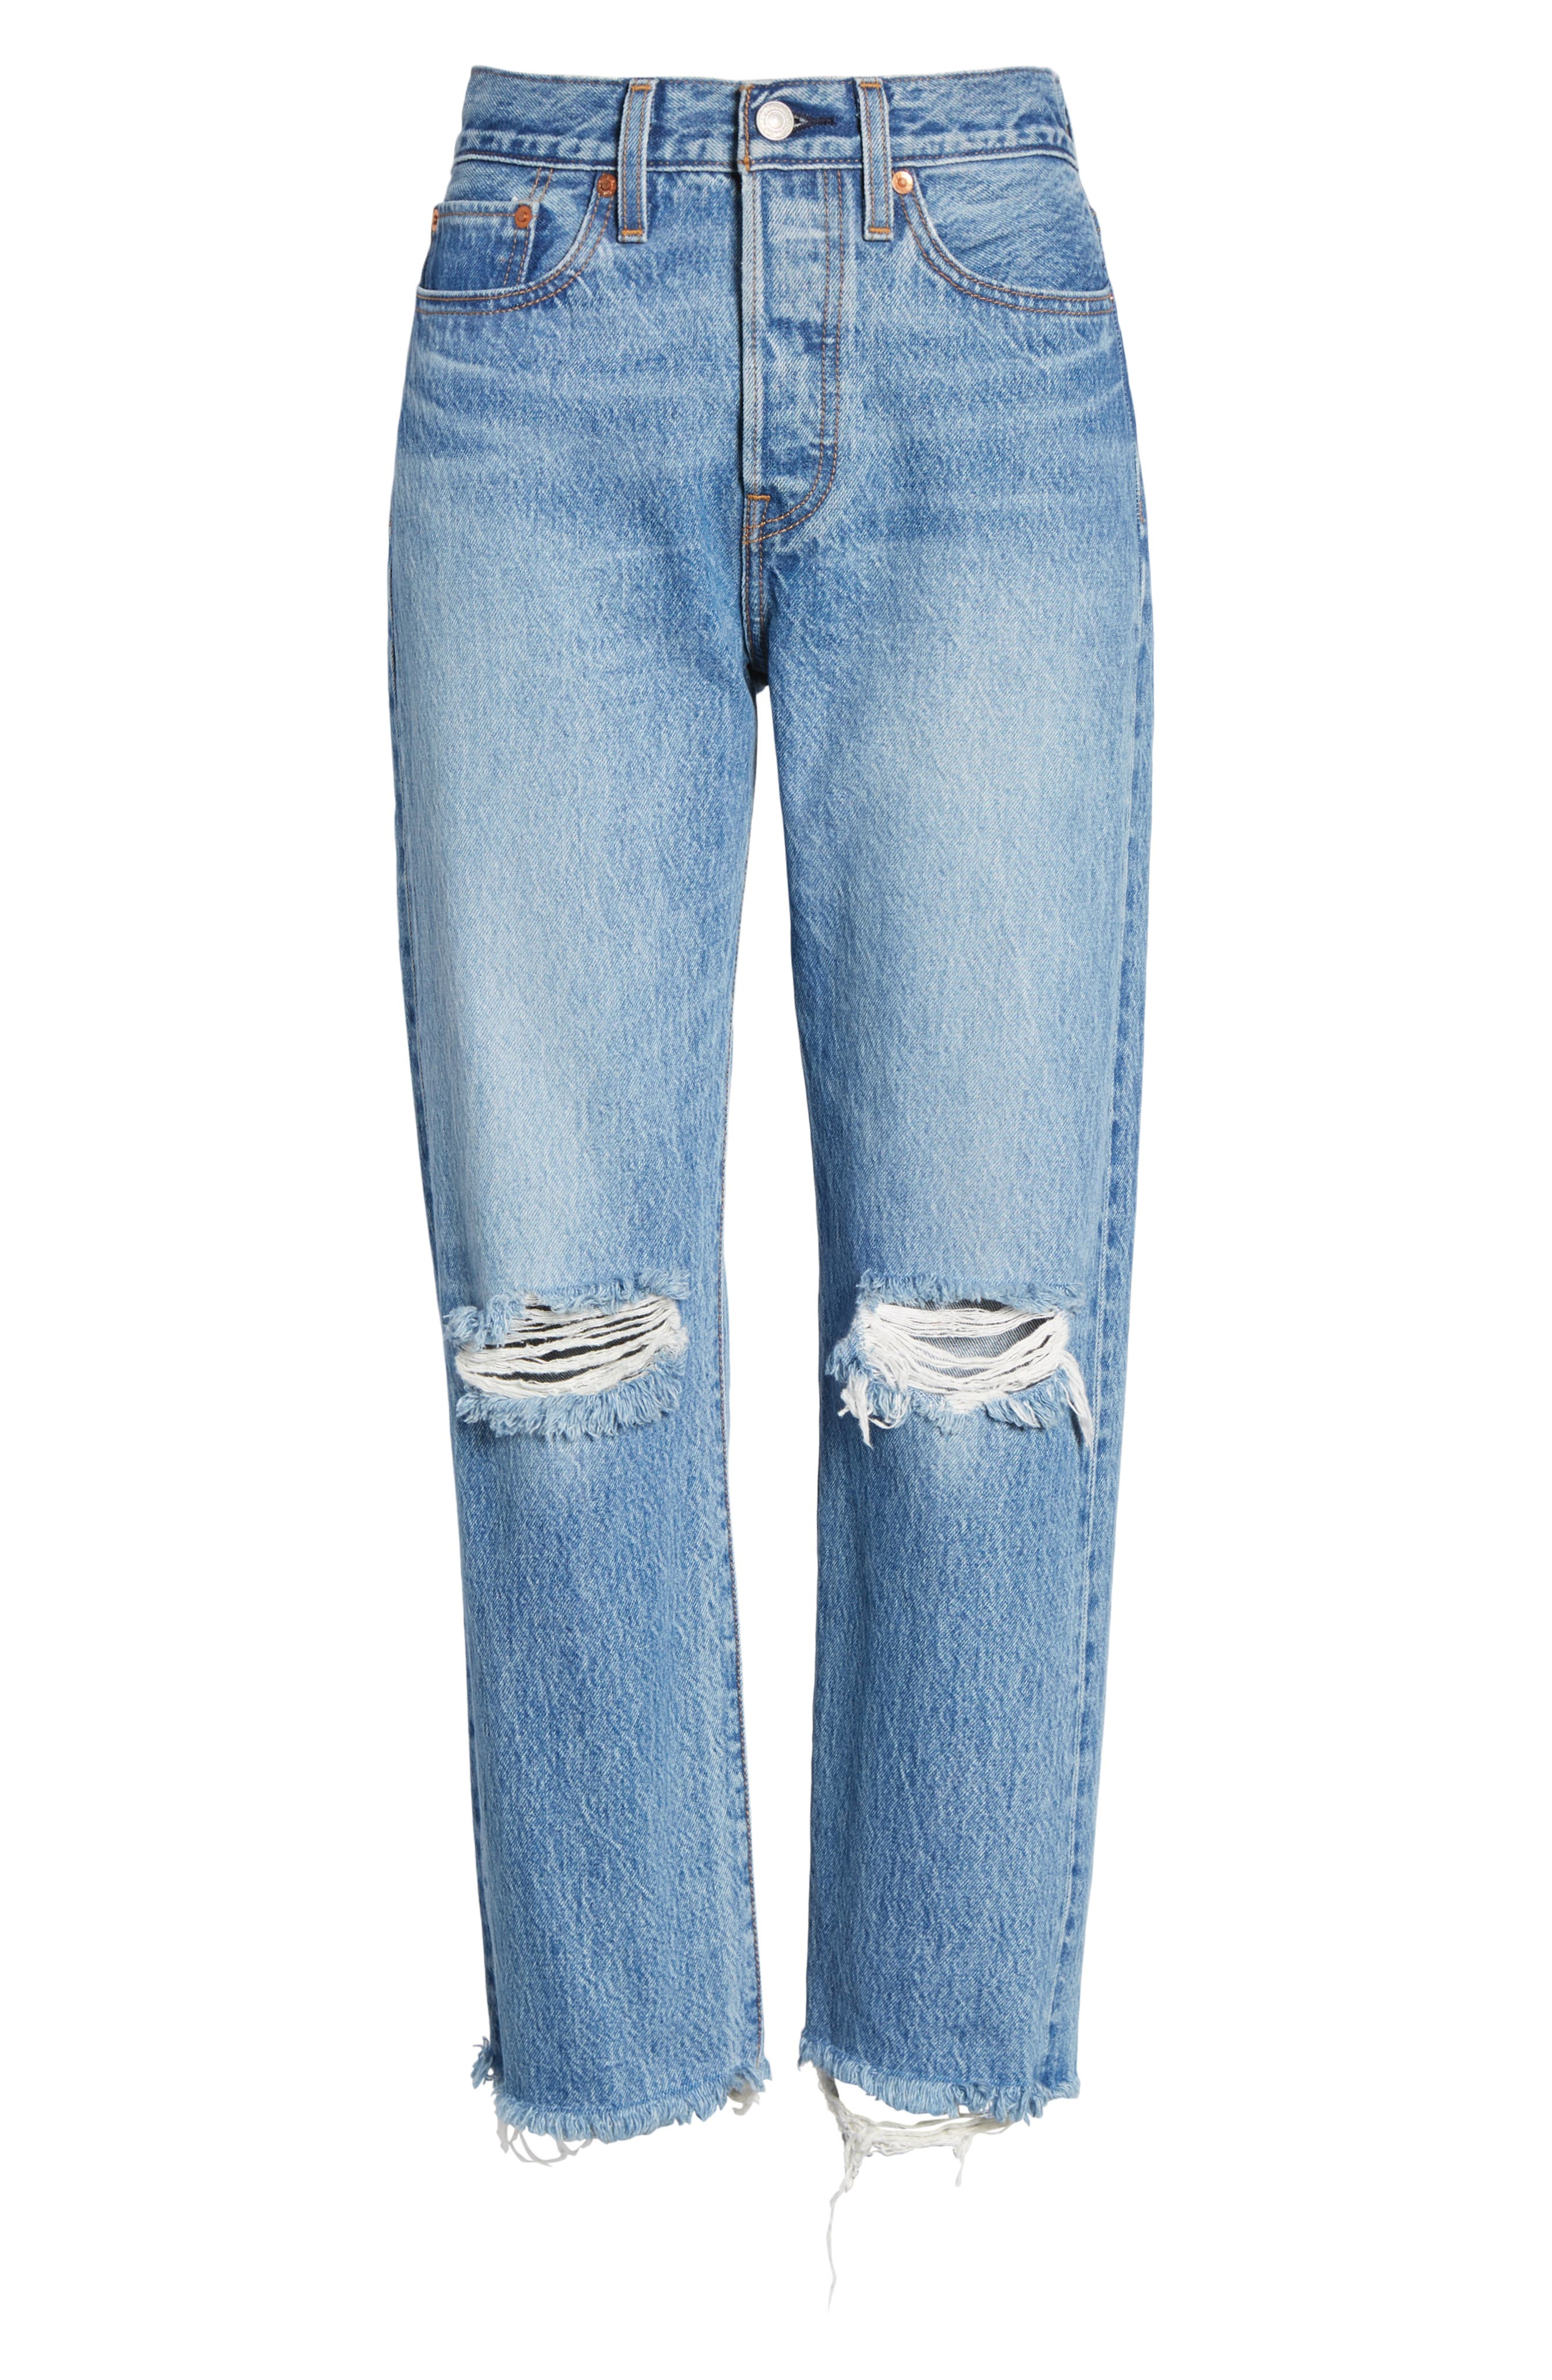 LEVI'S<SUP>®</SUP>, Wedgie High Waist Ripped Crop Straight Leg Jeans, Alternate thumbnail 7, color, UNCOVERED TRUTH